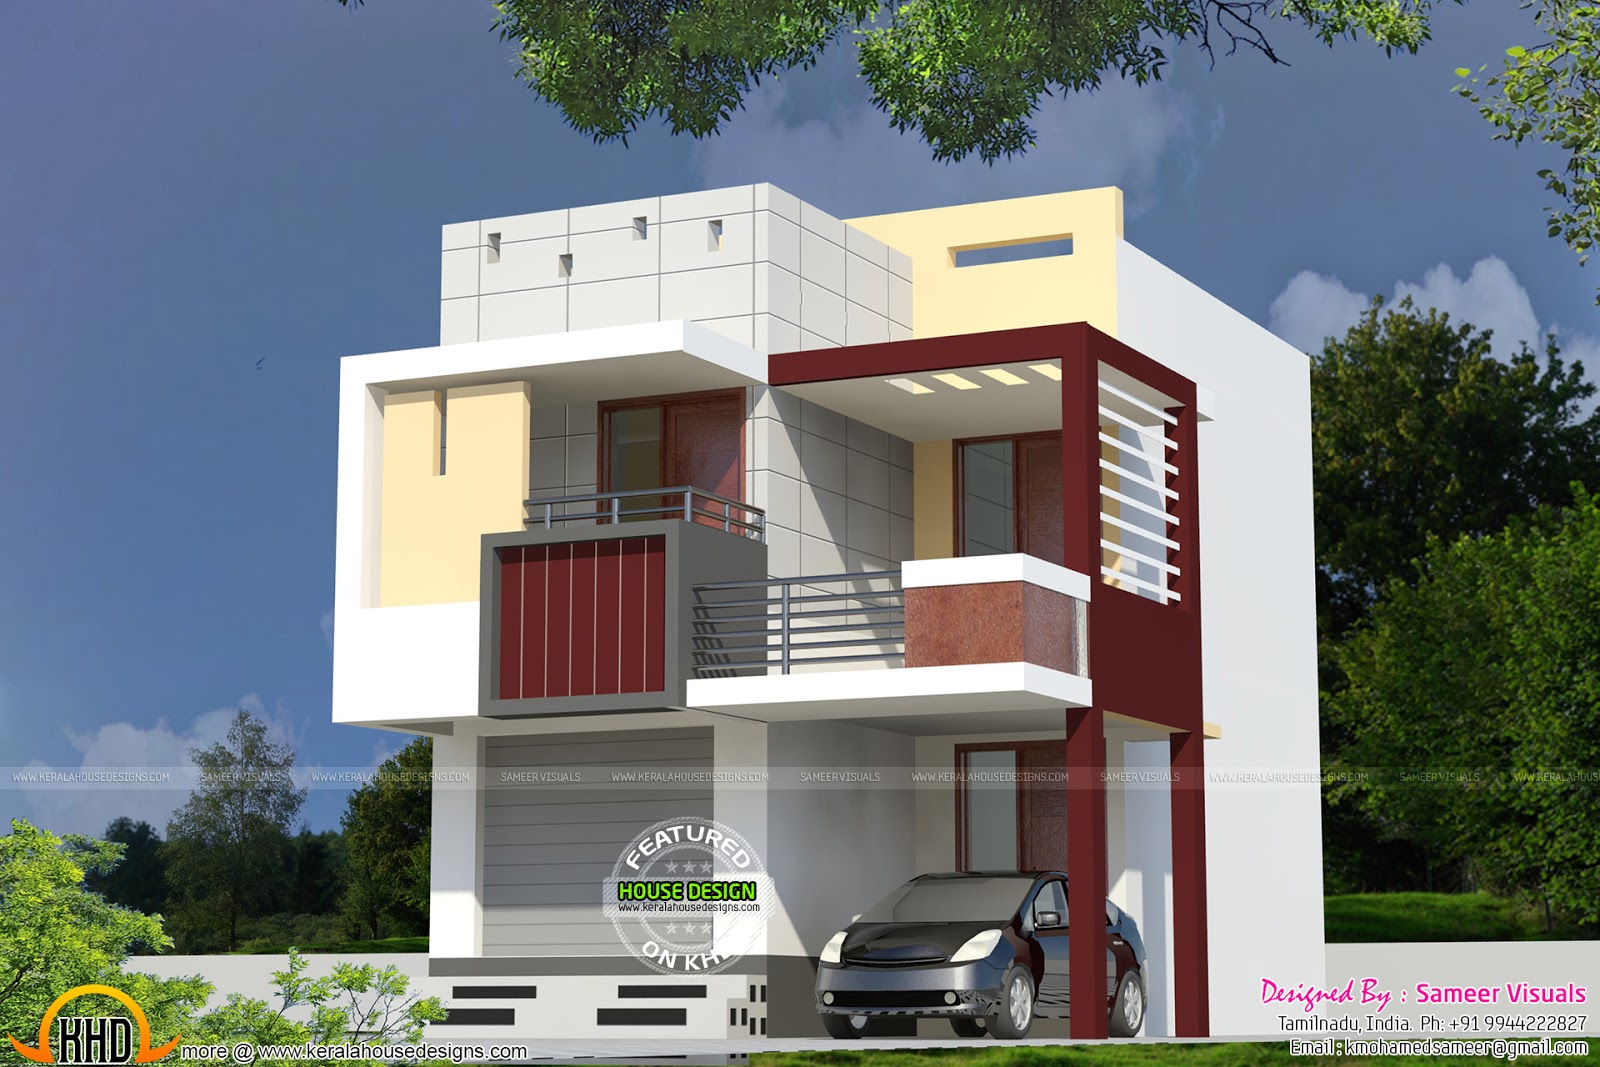 Very small double storied house kerala home design and for Small home designs photos